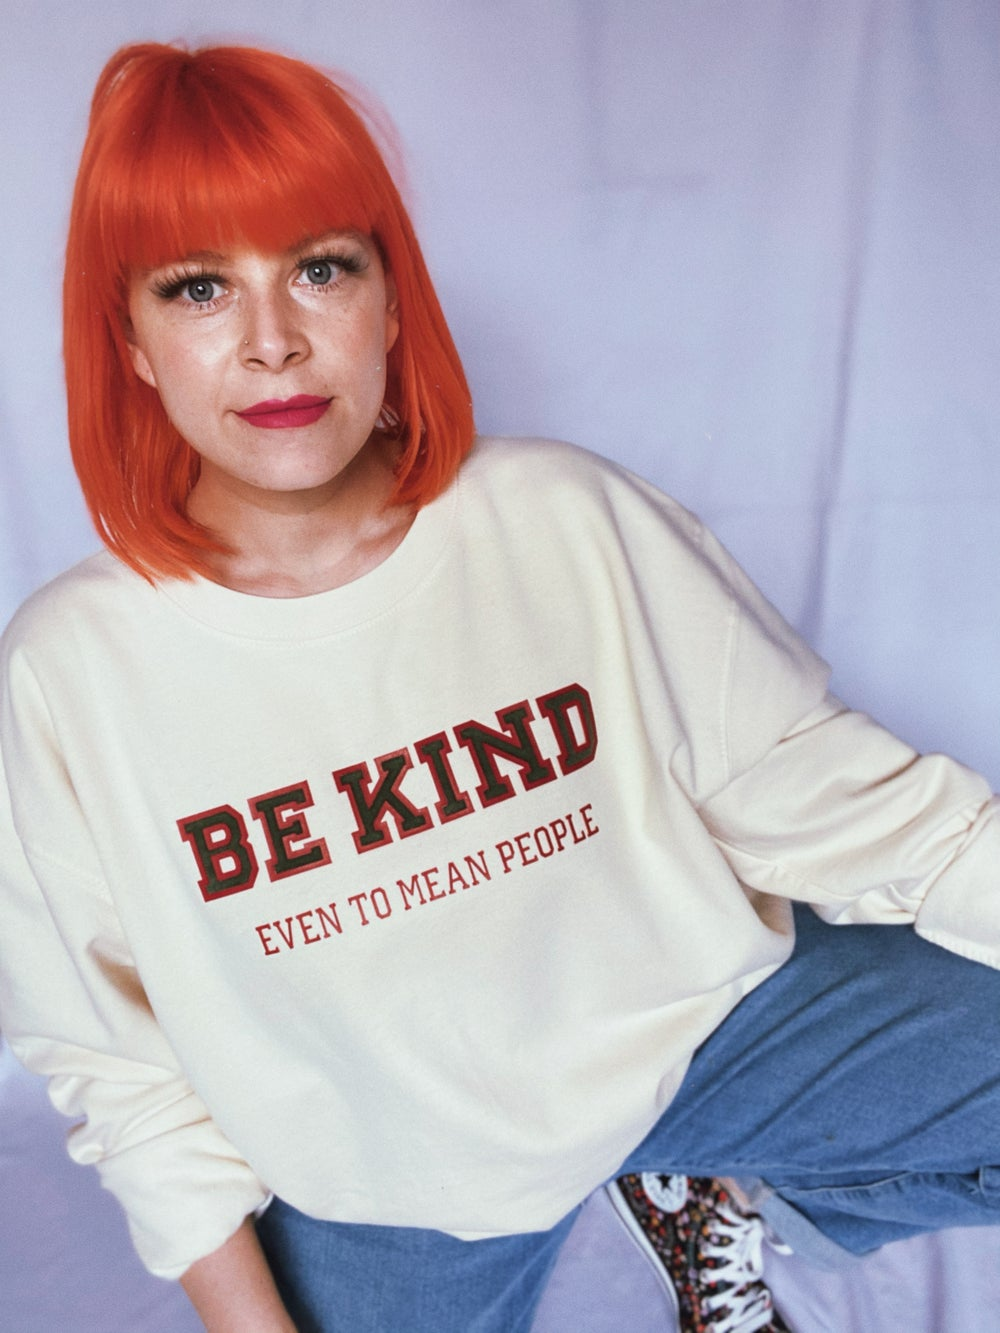 Image of Be kind even to mean people varsity sweat